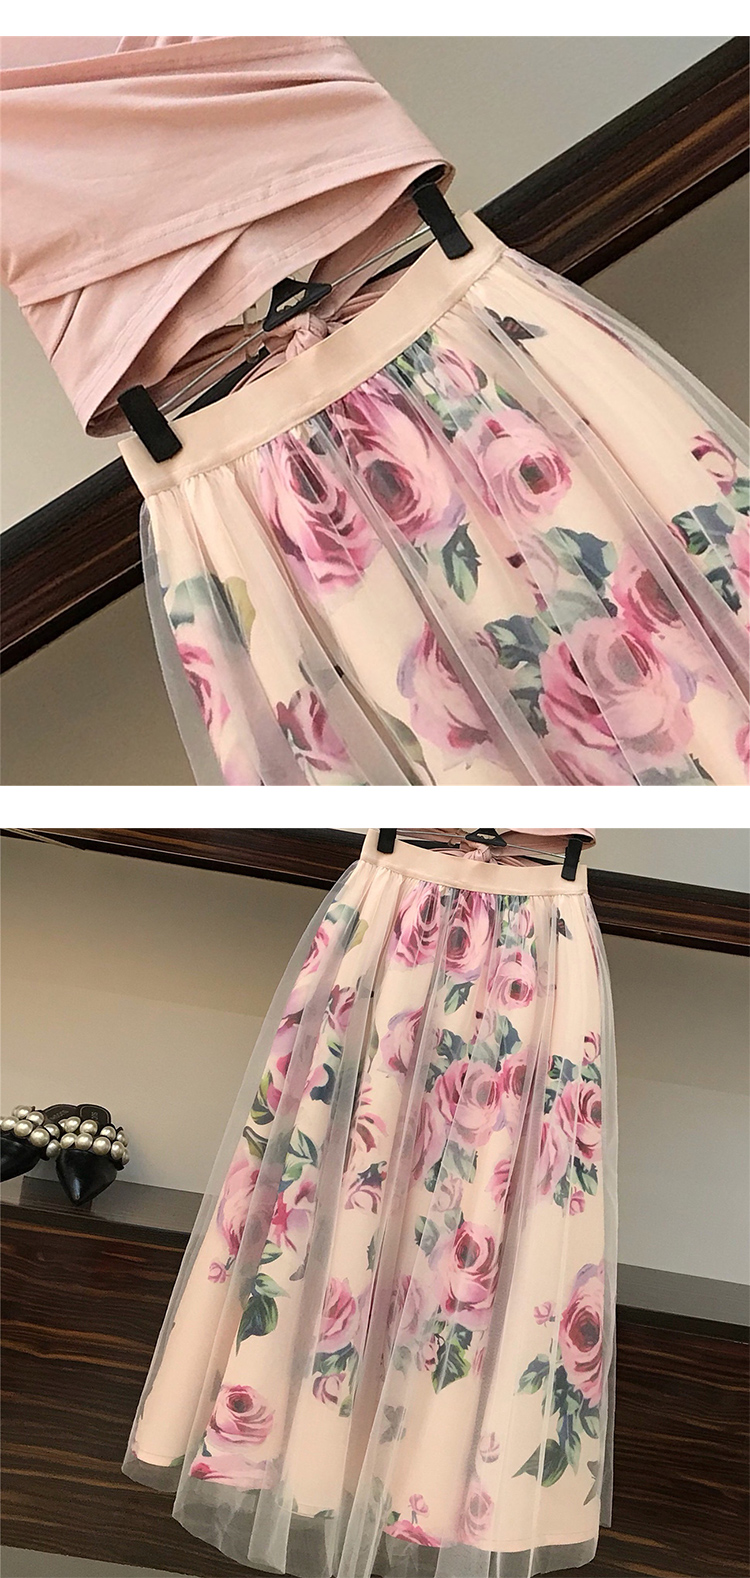 HTB1jCAjMsbpK1RjSZFyq6x qFXaI - HIGH QUALITY Women Irregular T Shirt+Mesh Skirts Suits Bowknot Solid Tops Vintage Floral Skirt Sets Elegant Woman Two Piece Set